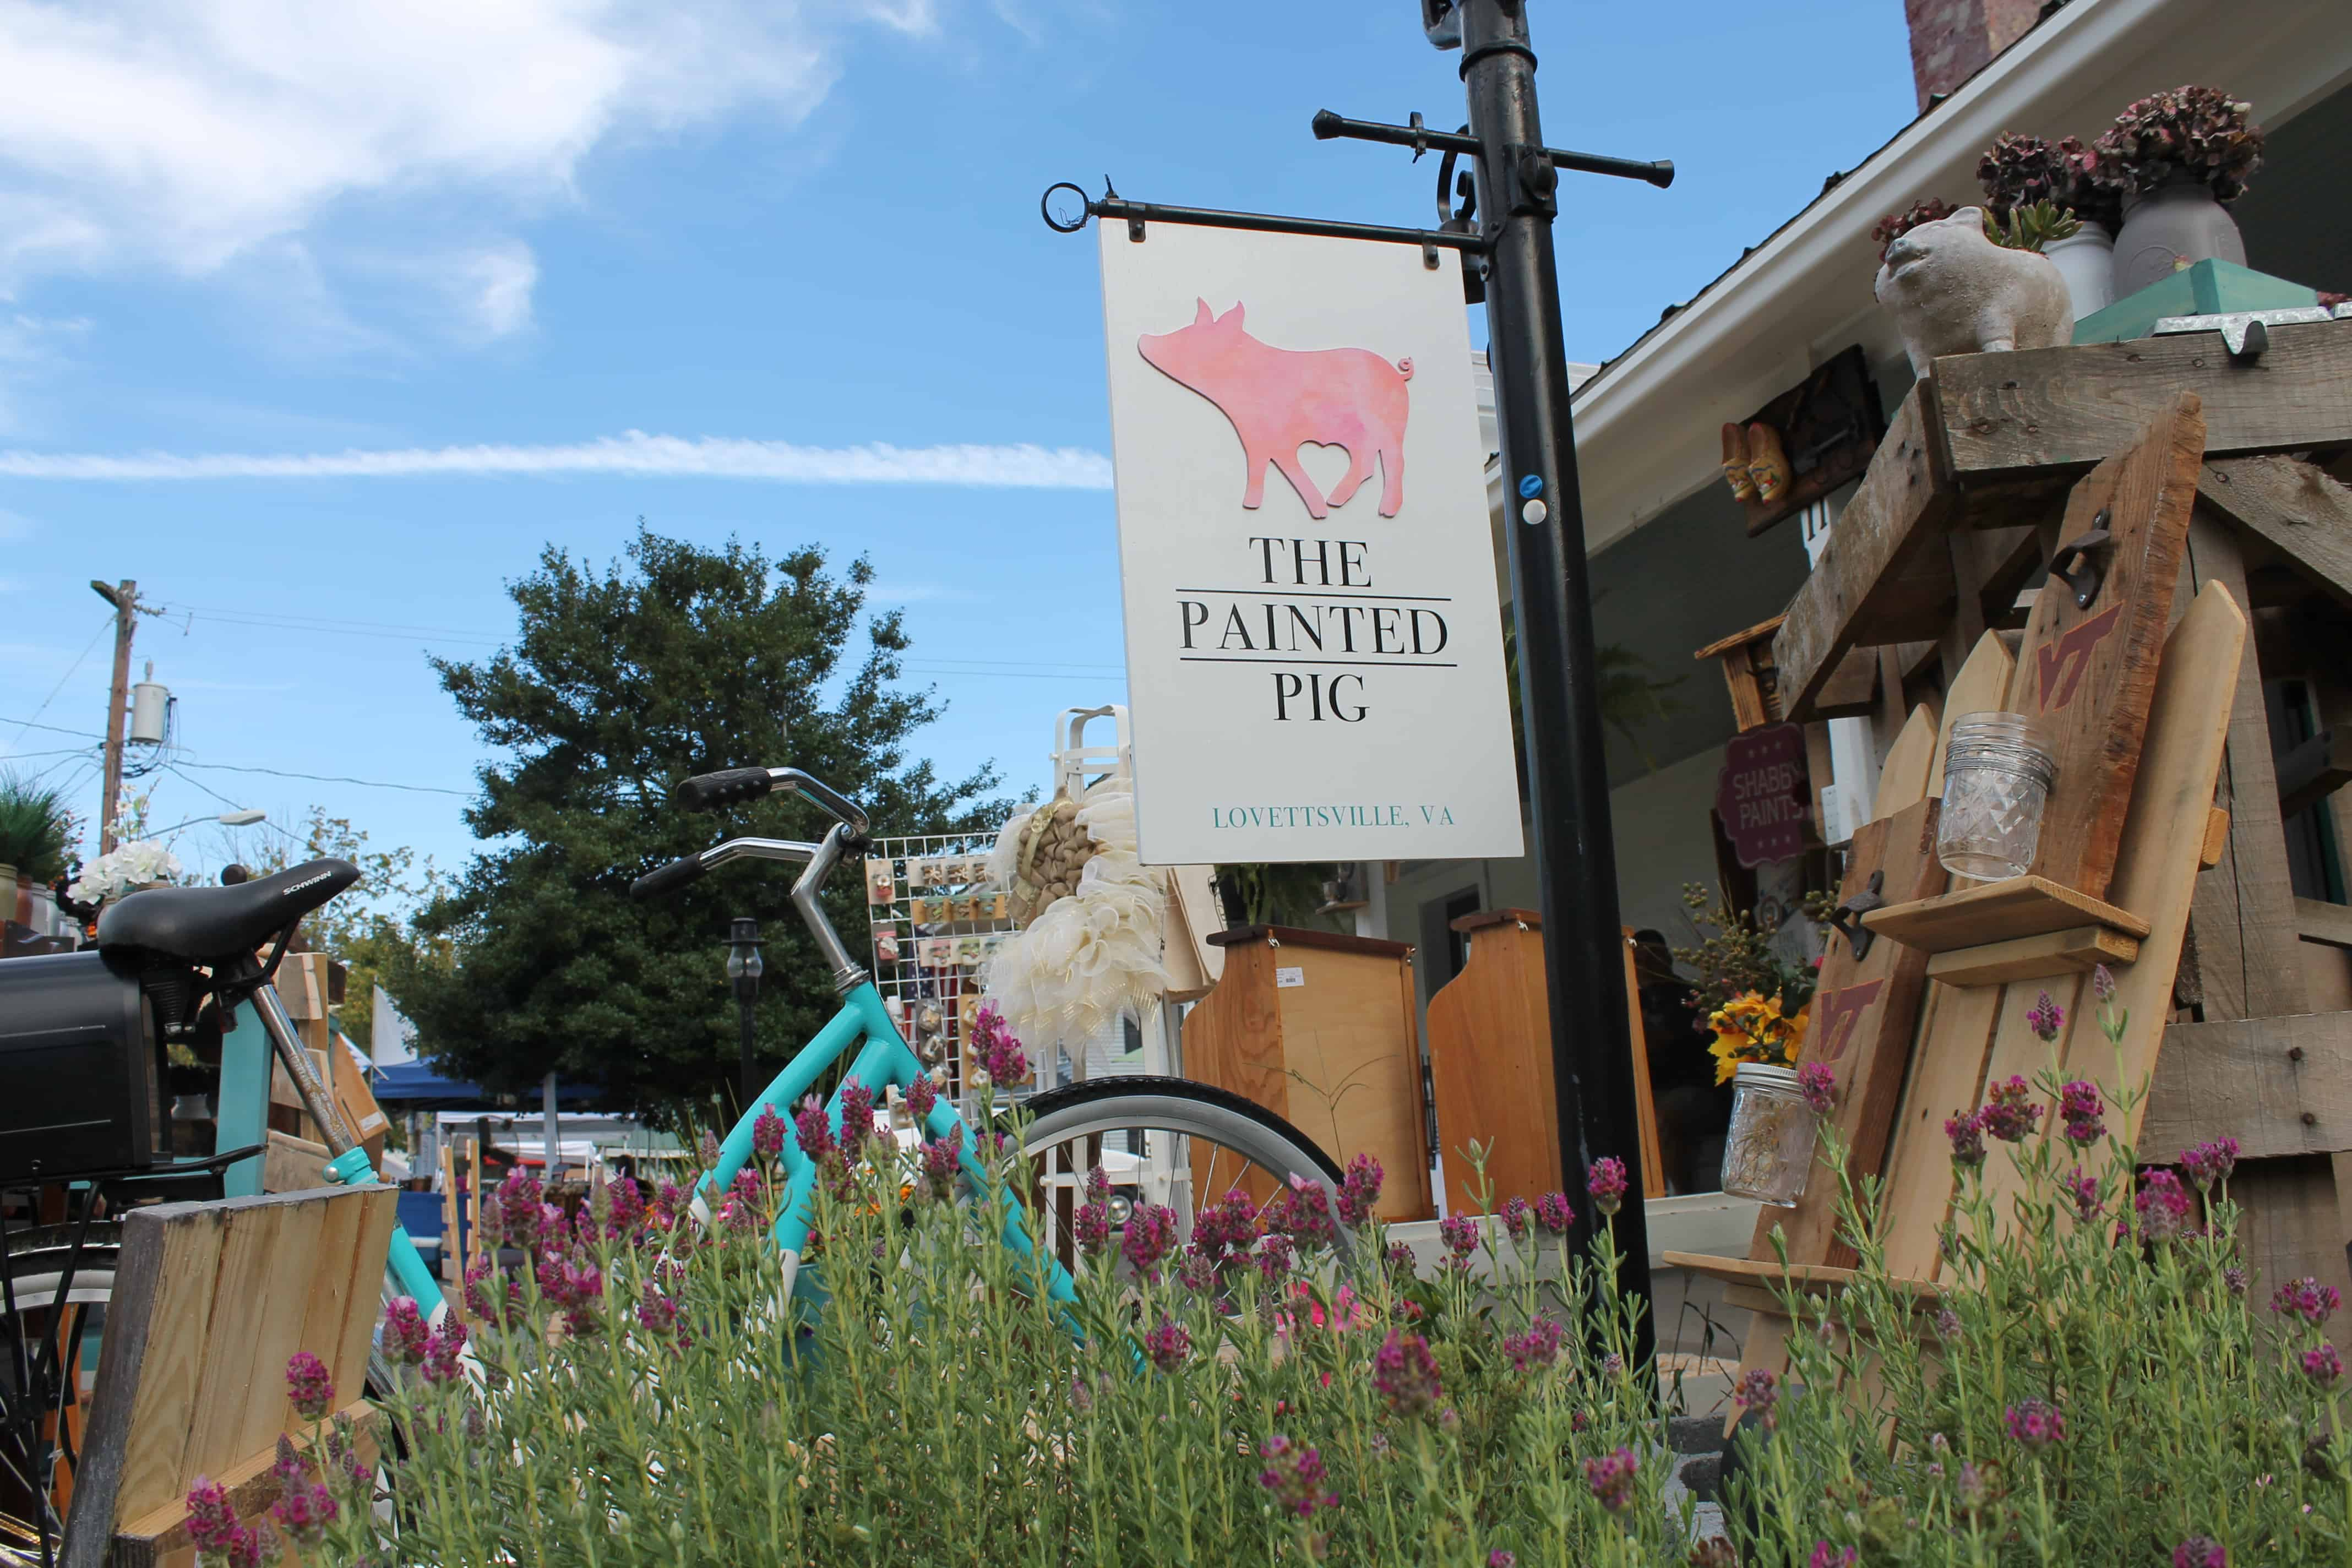 Saved by Scottie The Painted Pig opening day sign and bike